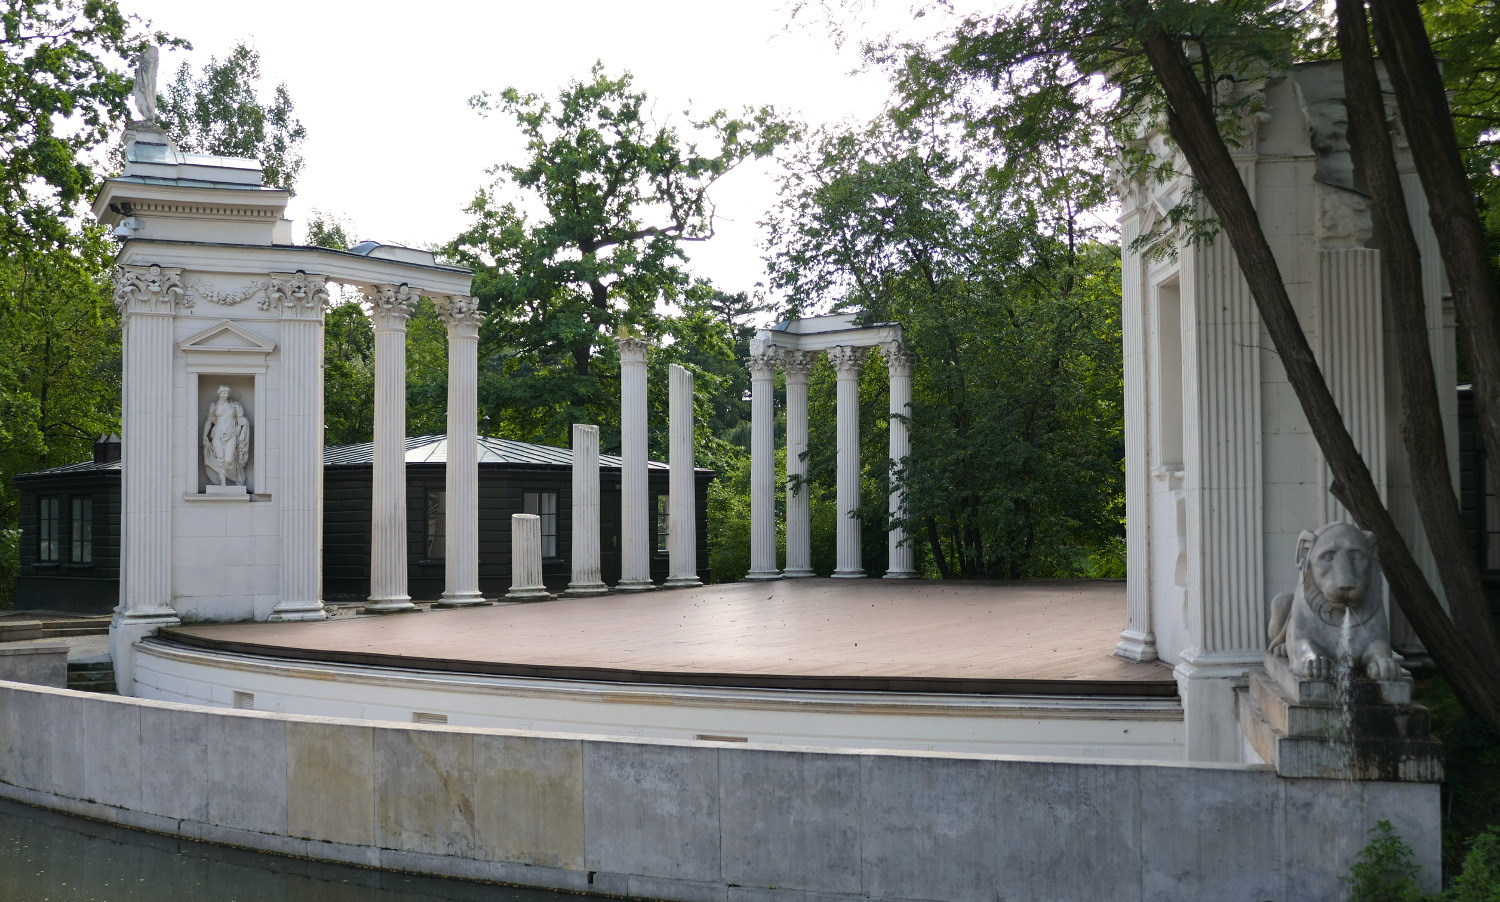 While it's only a replica of a Roman theater, it's still a gorgeous addition to Lazienki Park